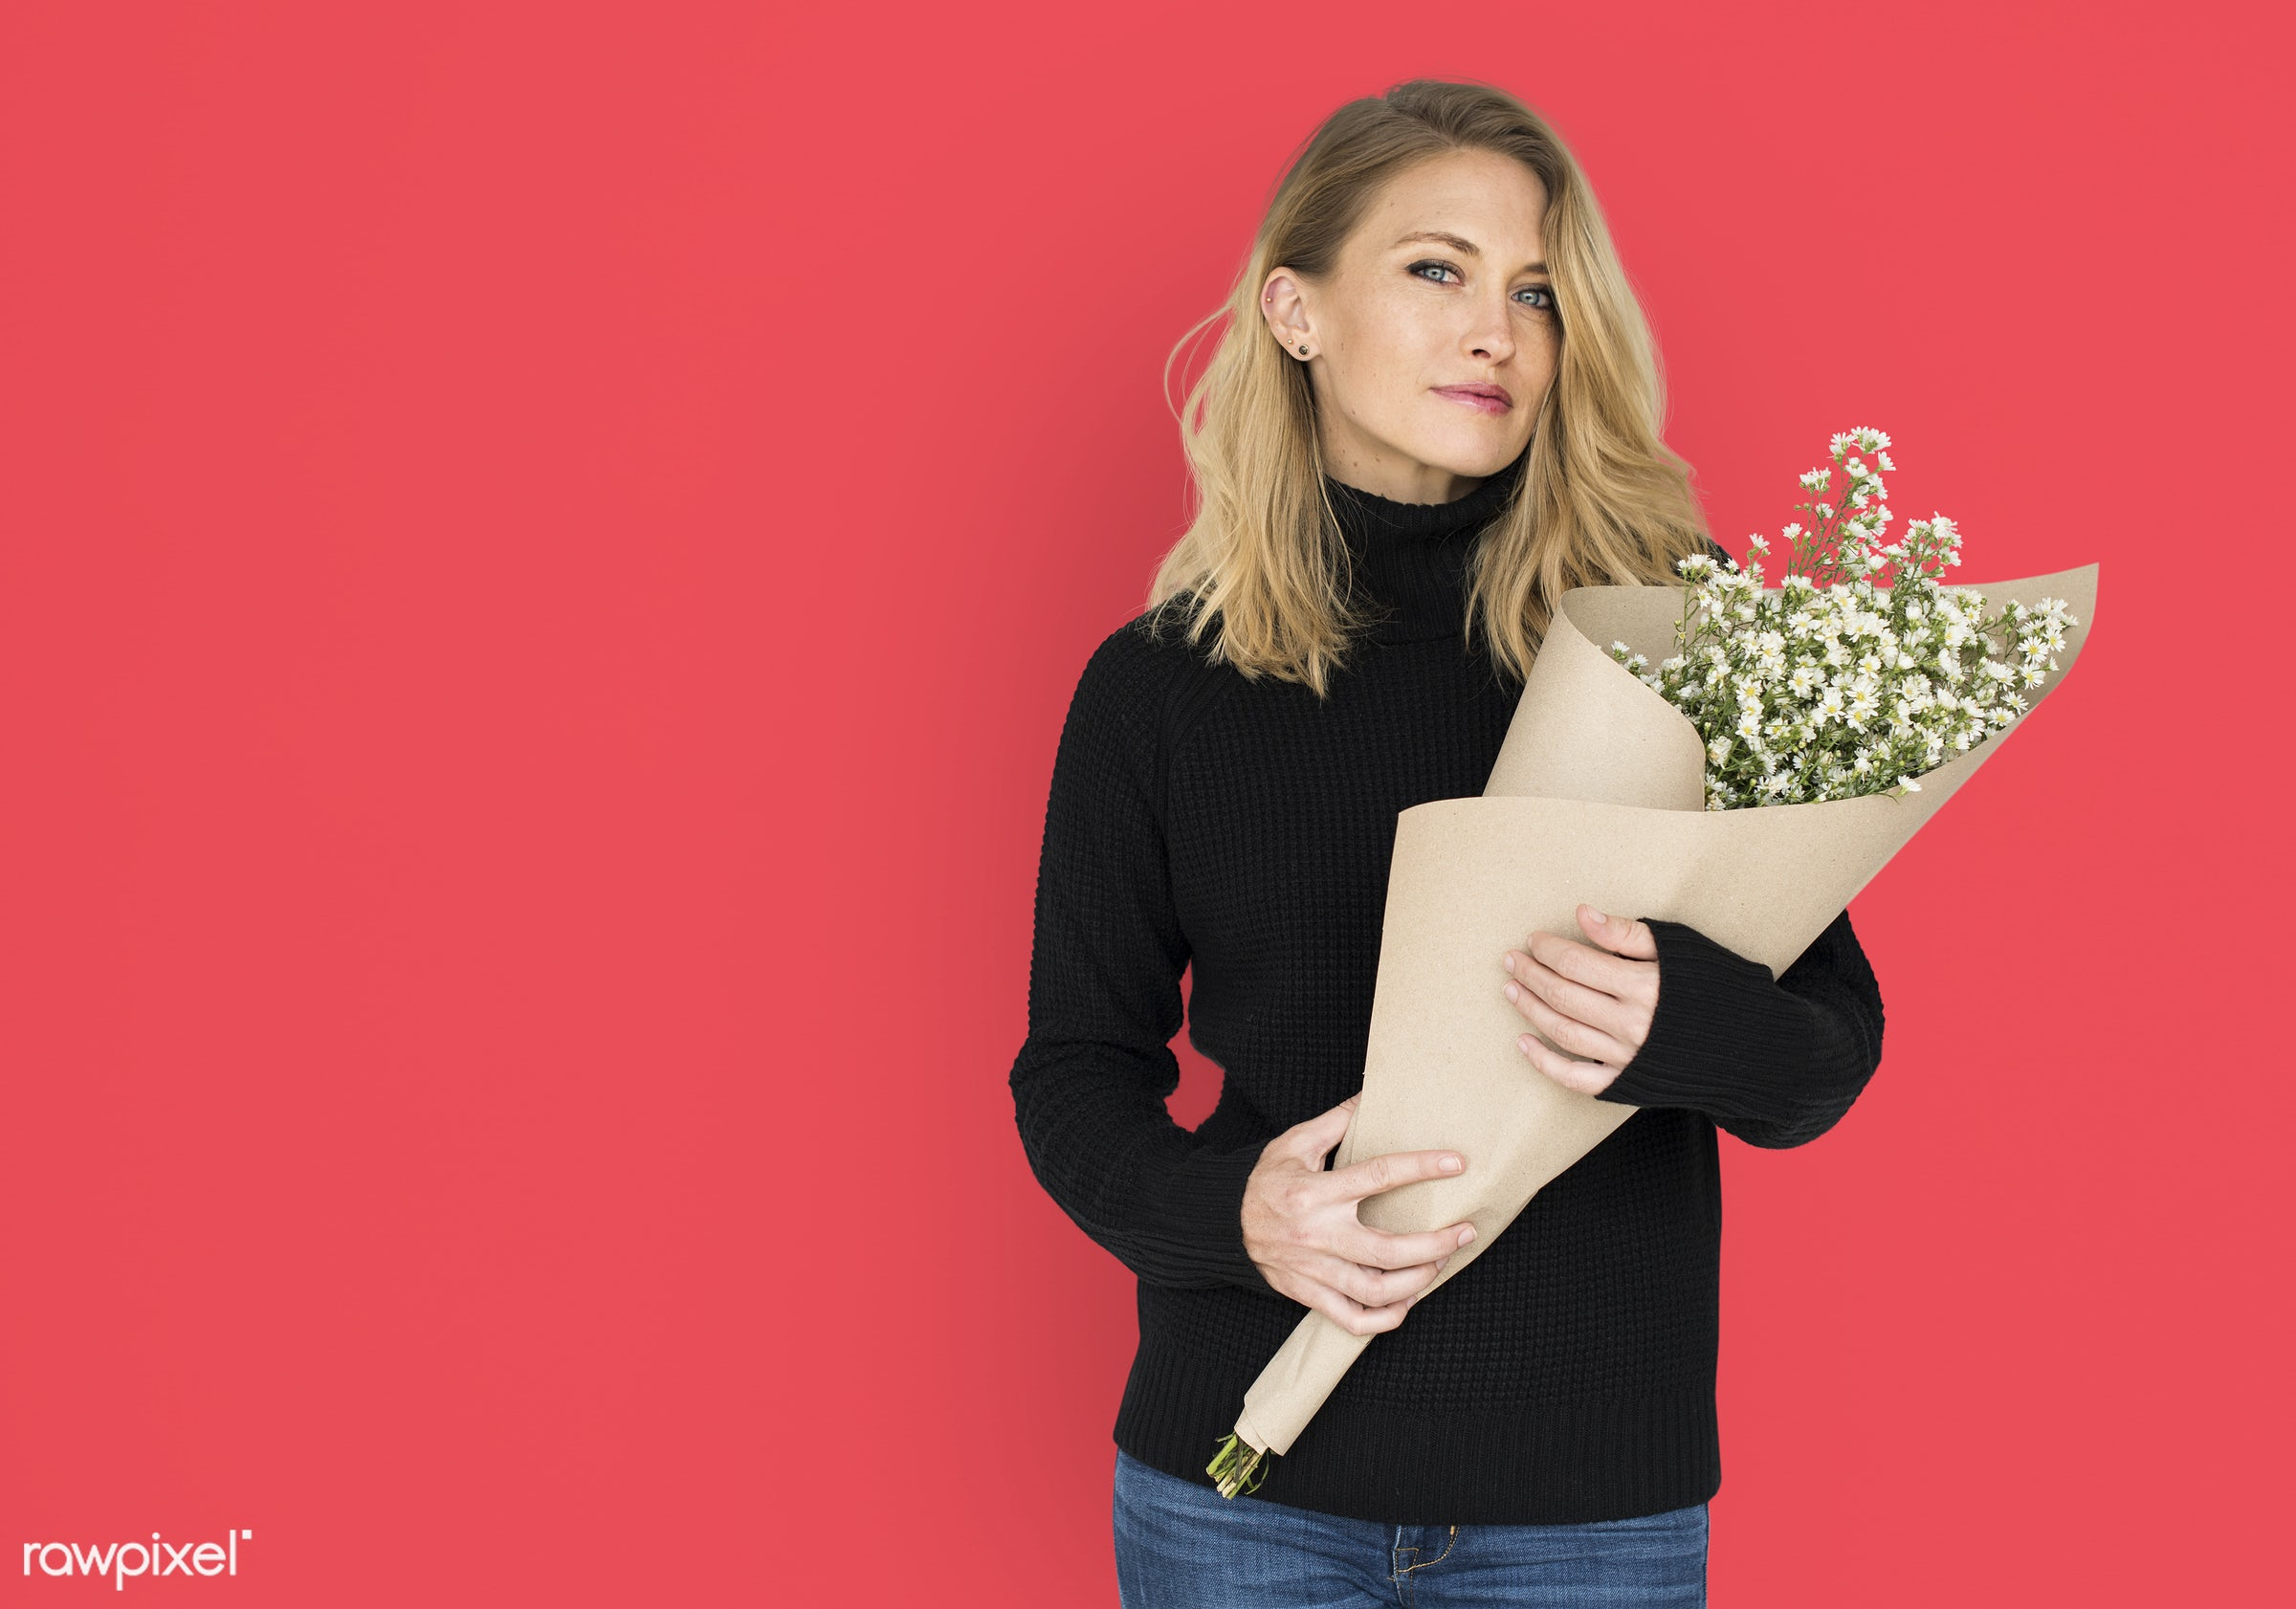 studio, expression, bouquet, person, people, woman, smile, cheerful, smiling, flower, orange, isolated, happiness, portrait...